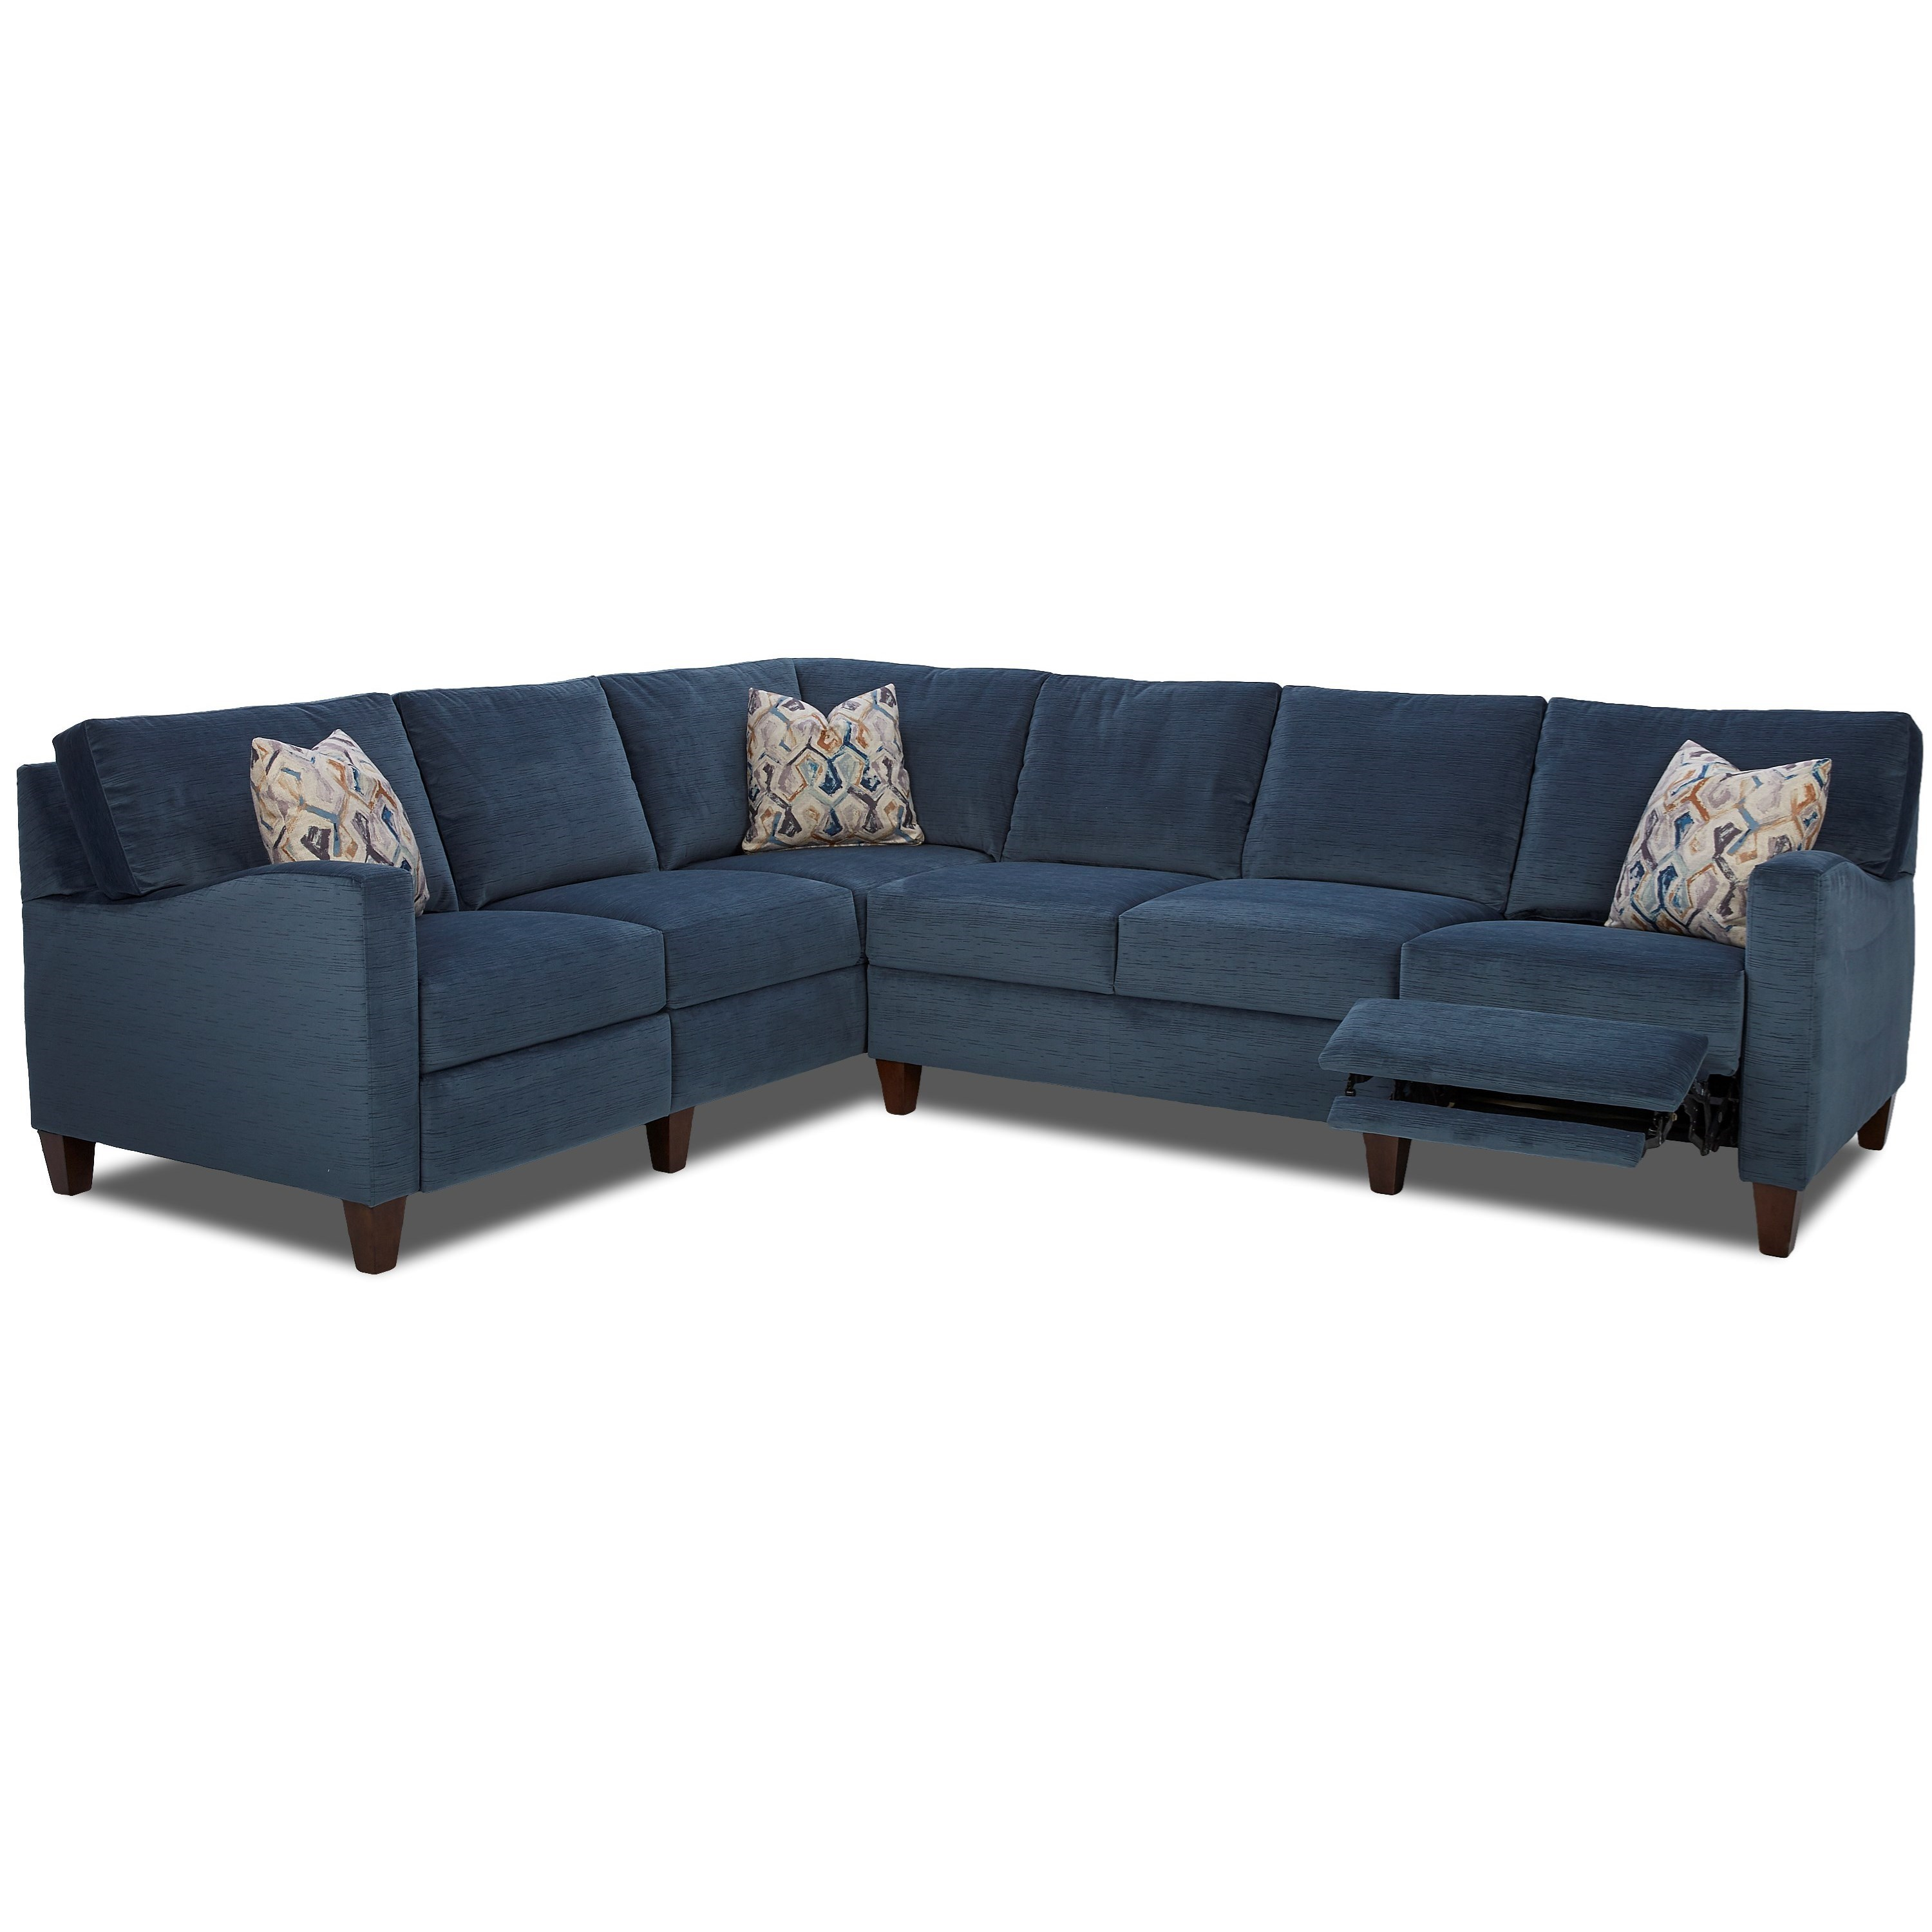 Recliner Corner Sofa Collection New Paolo Manual Recliner Corner